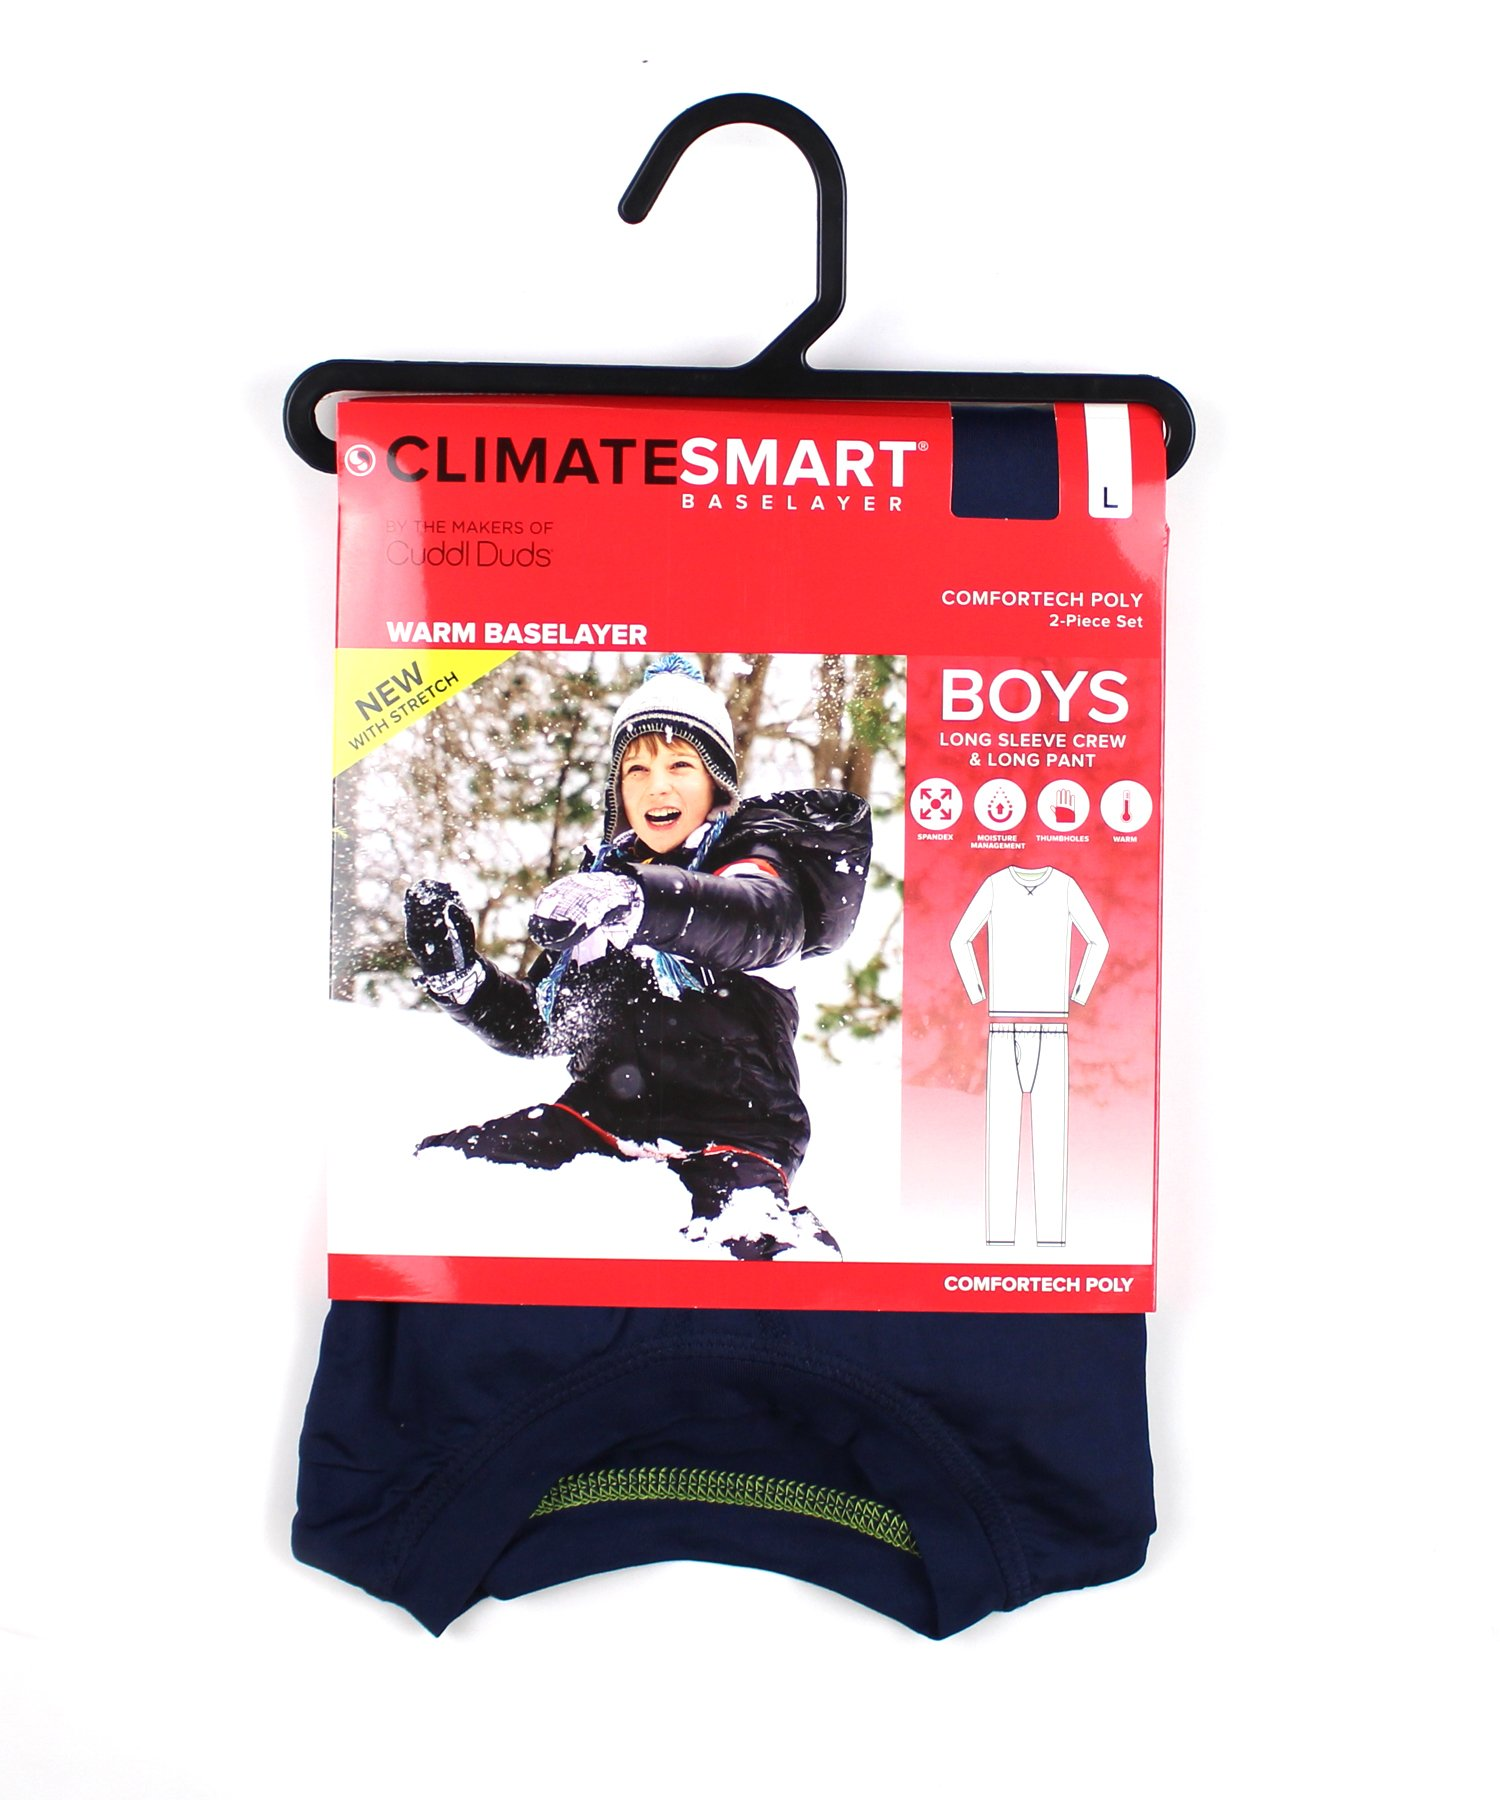 Cuddl Duds Boys Climatesmart Base Layer Thermal Comfortech Set (L 12/14, Navy) by Cuddl Duds Komar